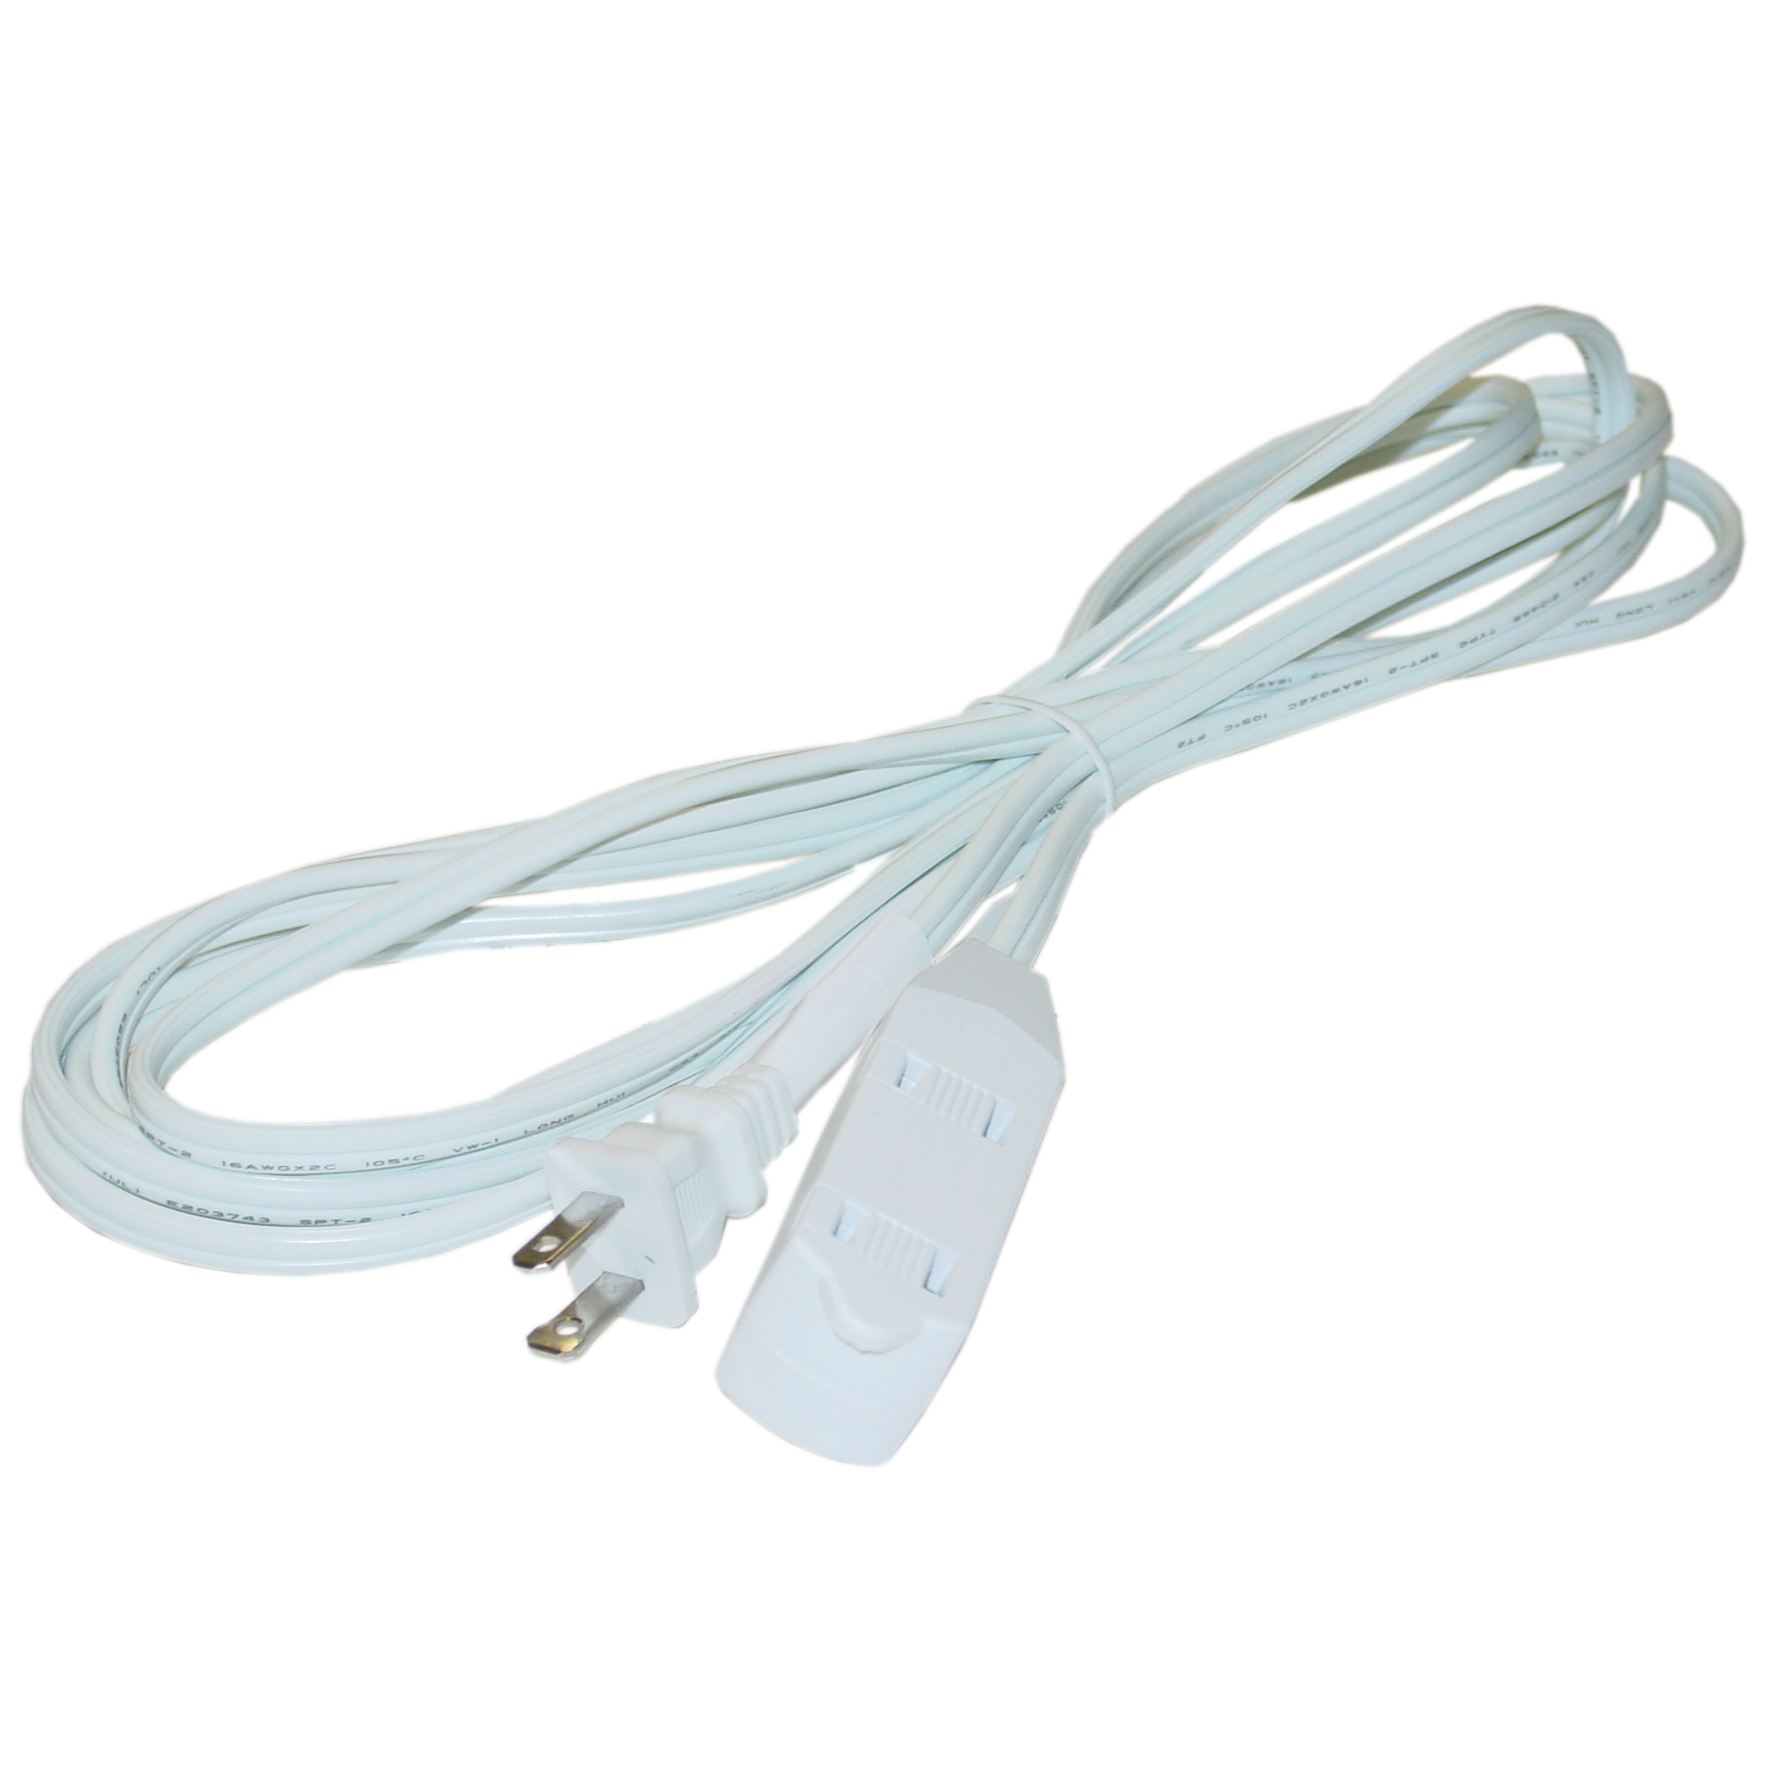 Wholesale Extension Cords - Bulk Extension Cords - Discount